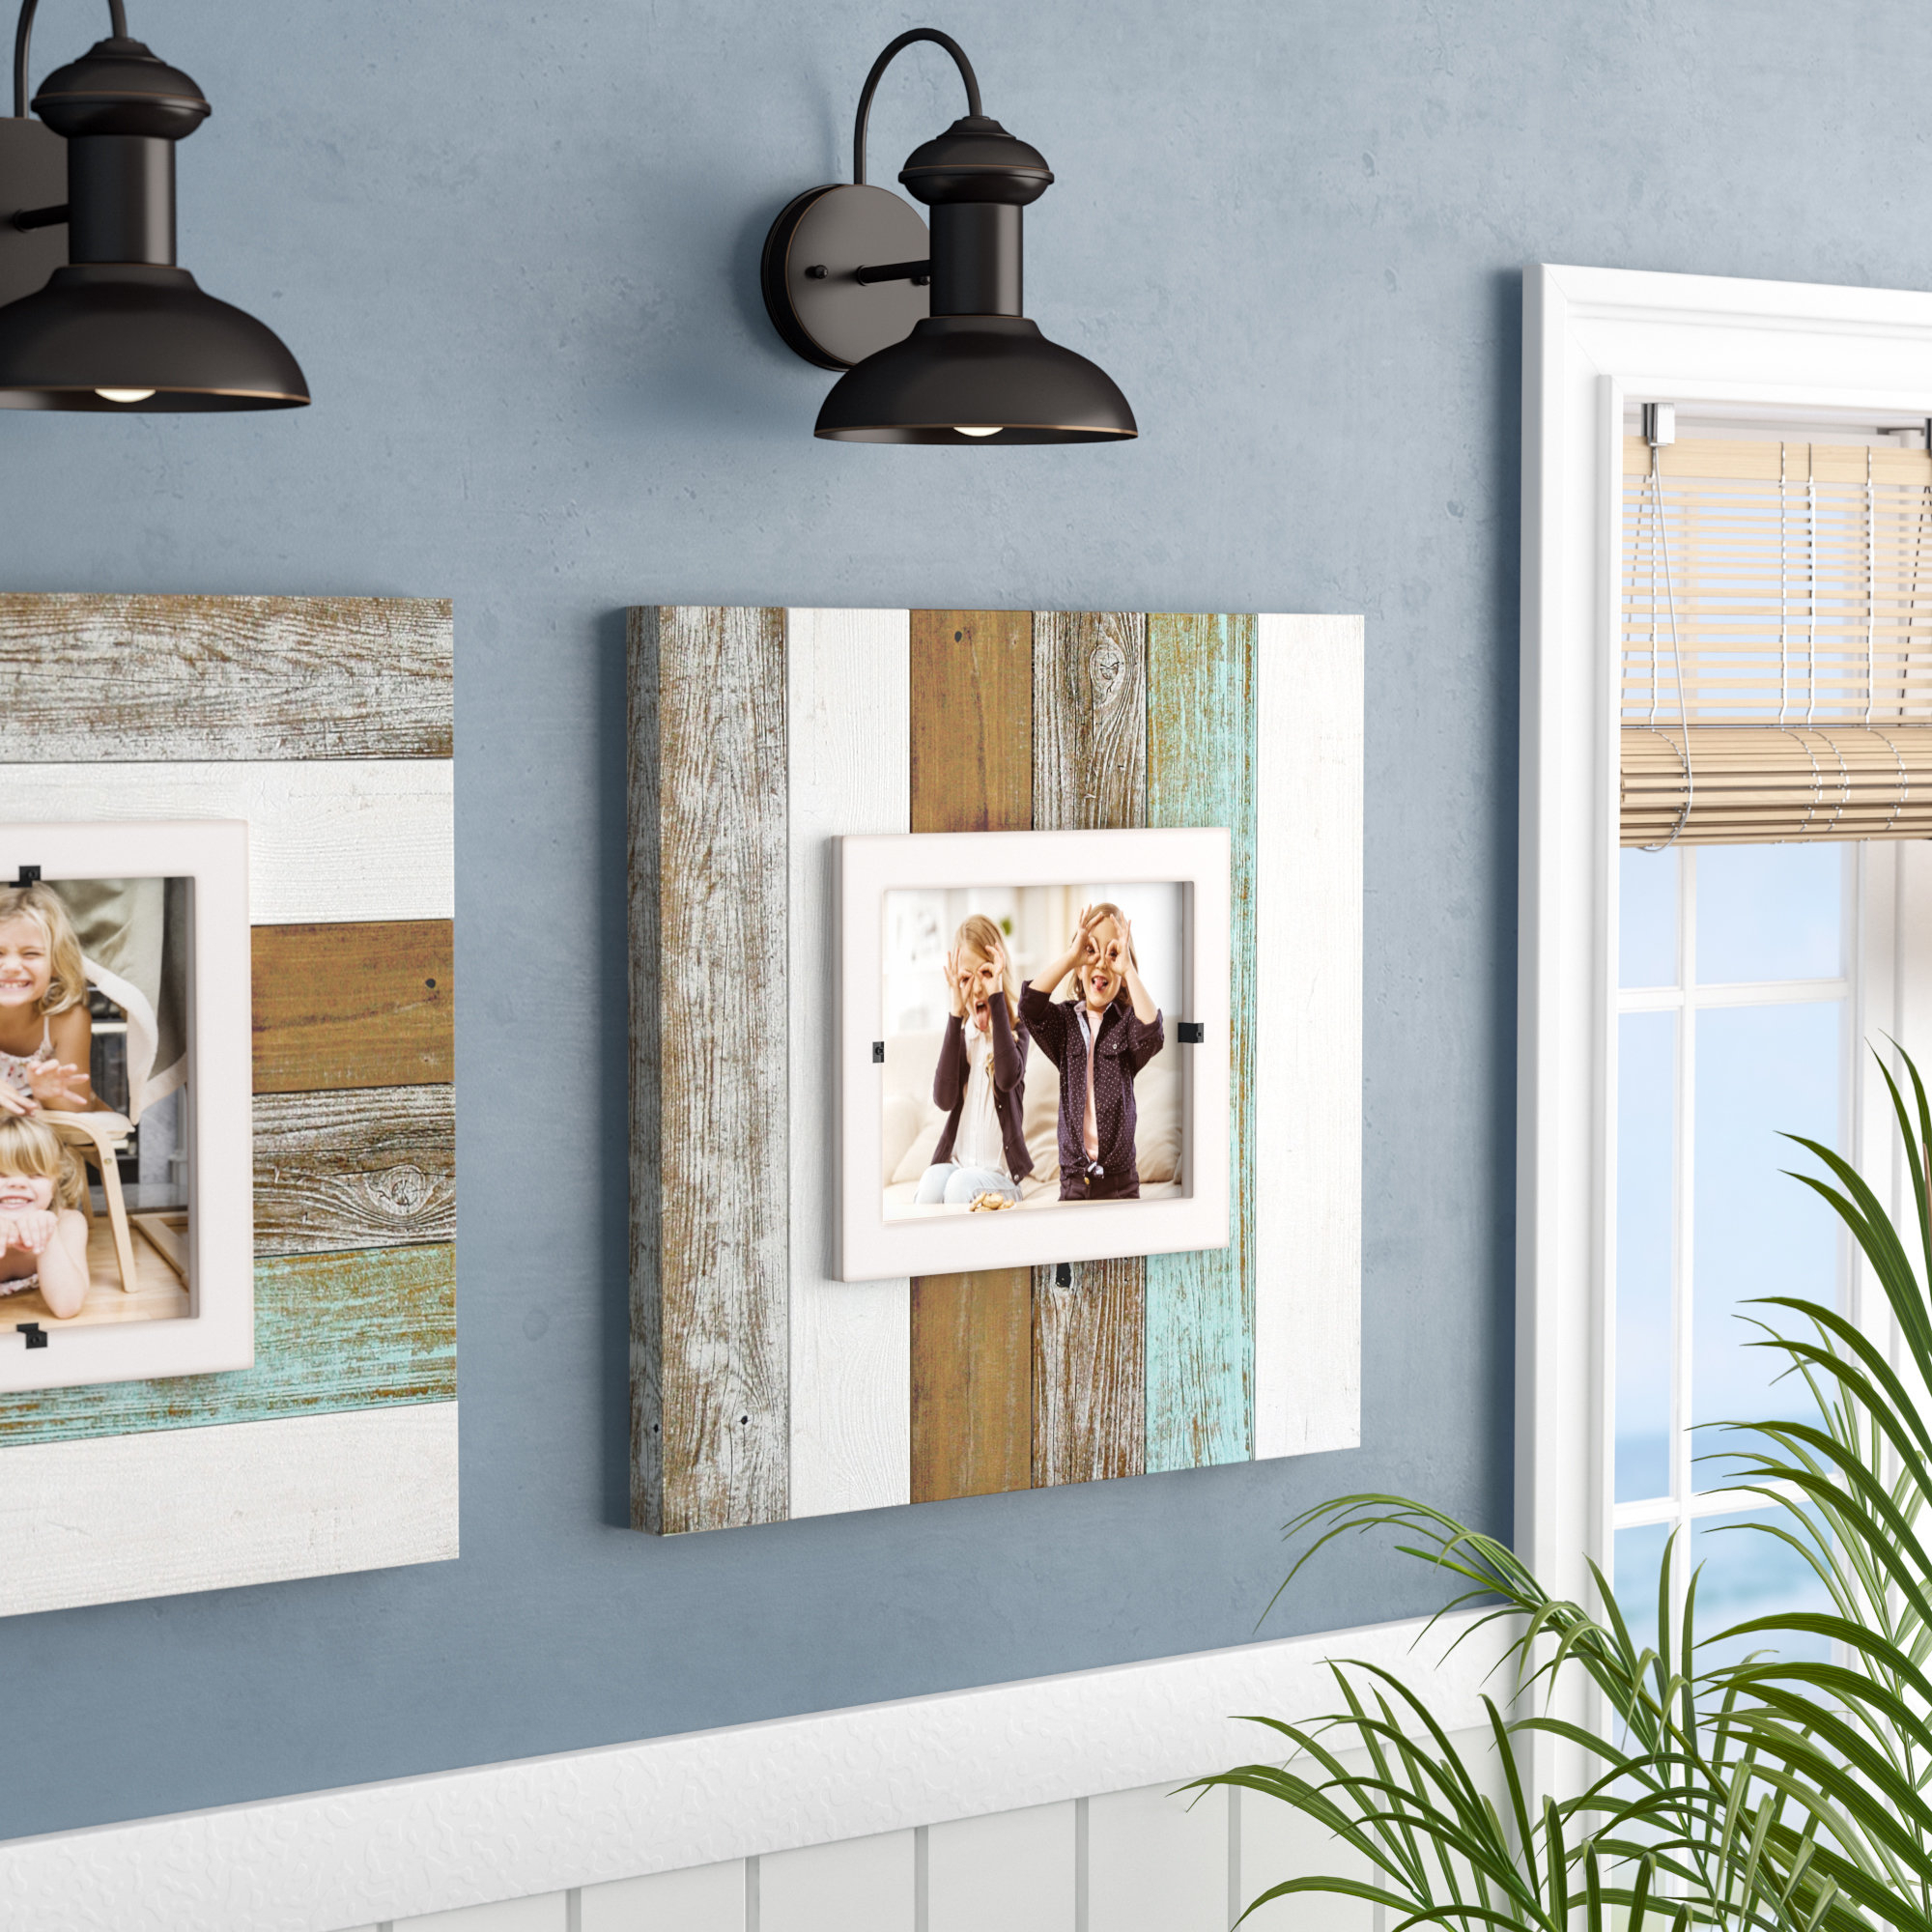 Millanocket Metal Wheel Photo Holder Wall Decor Within Most Recent Beachcrest Home Dunbarton Picture Frame (View 15 of 20)